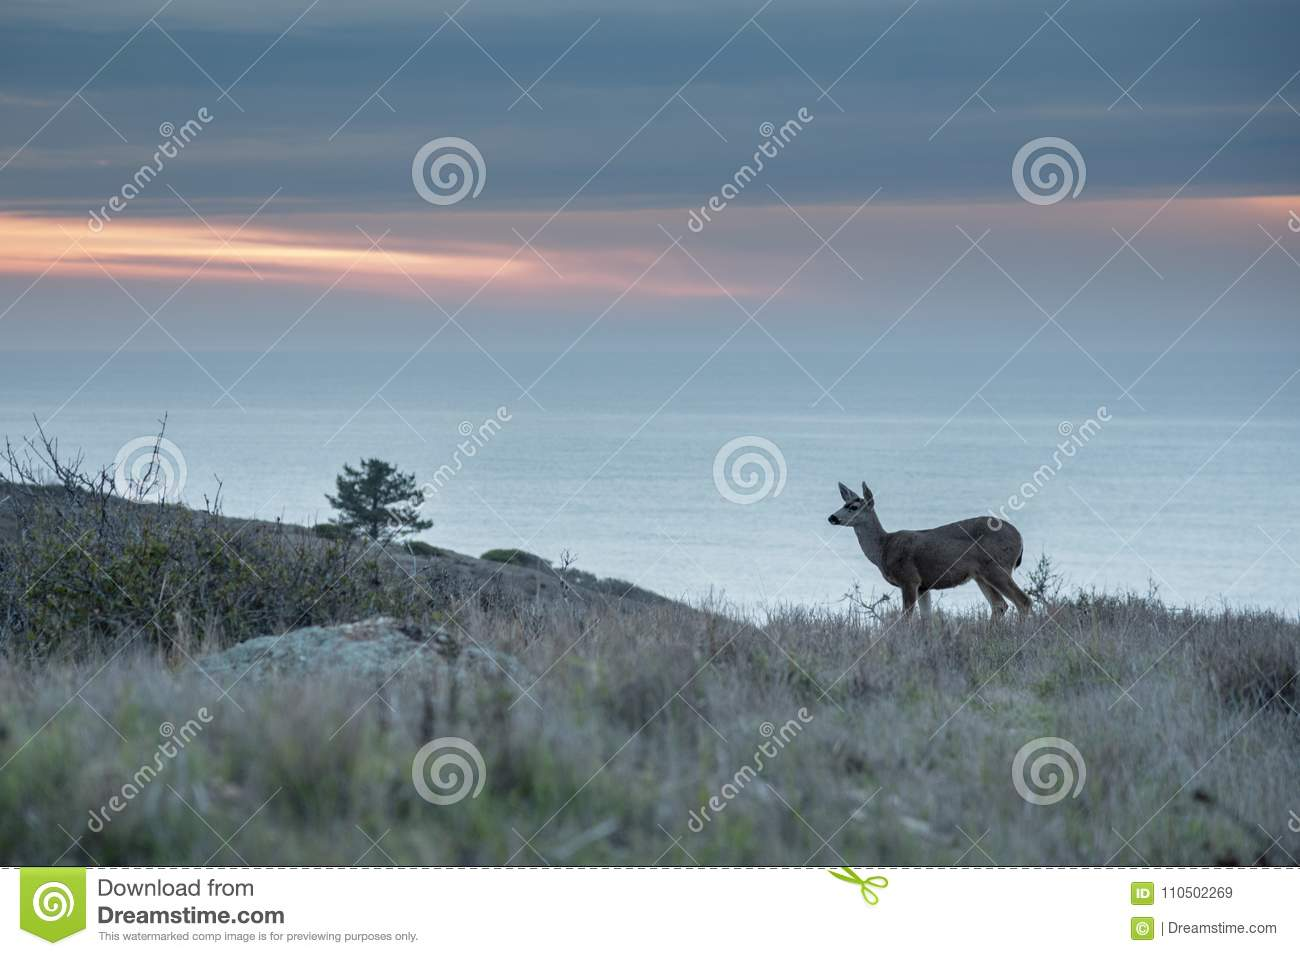 Deer grazing at sunset with ocean in background